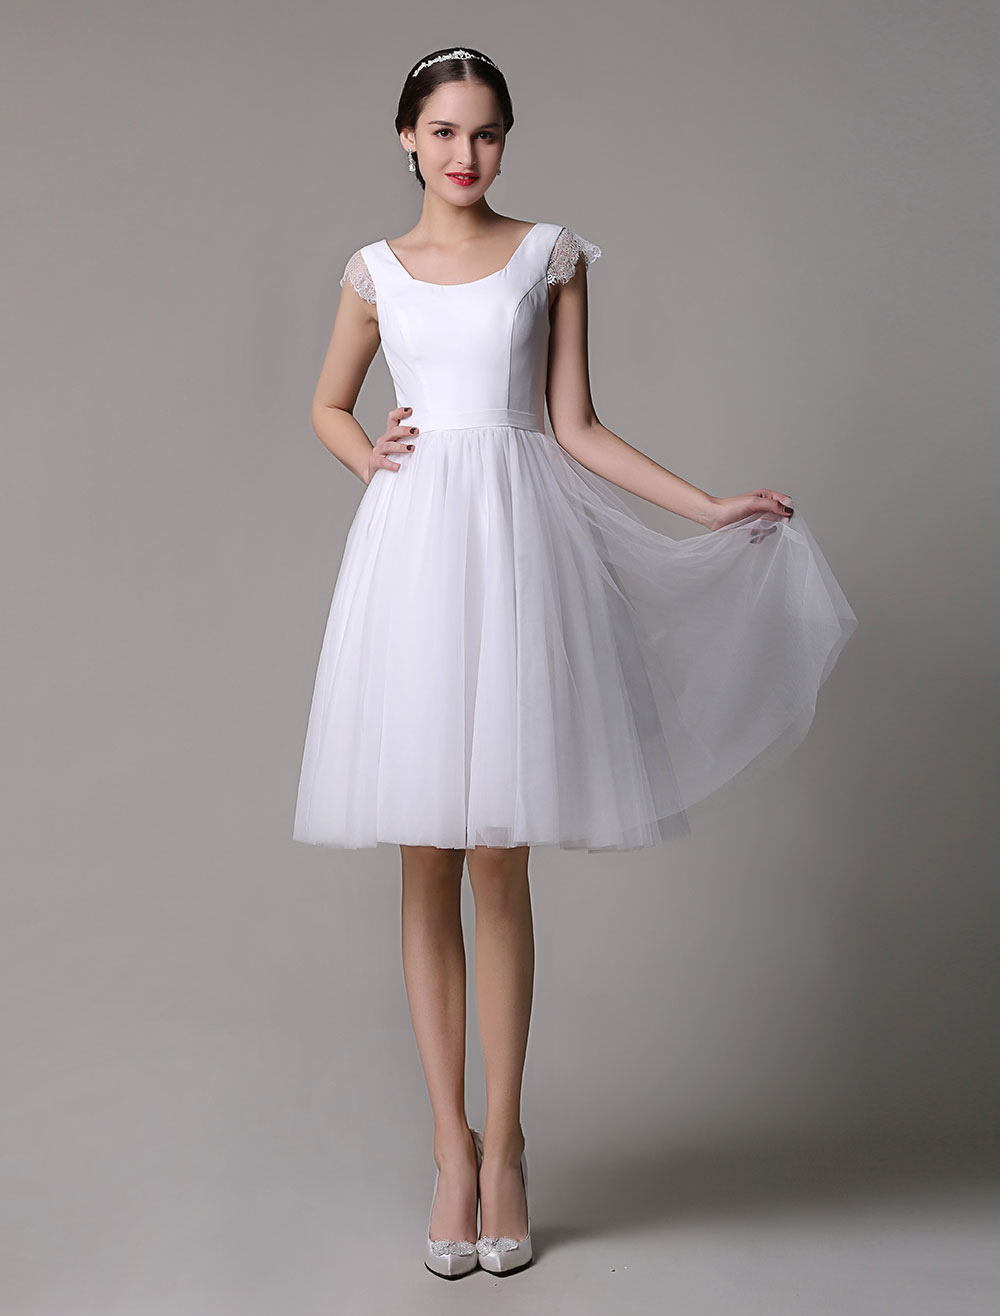 Tulle Knee Length Scoop Neck Short Wedding Dress With Lace Cap Sleeves Milanoo